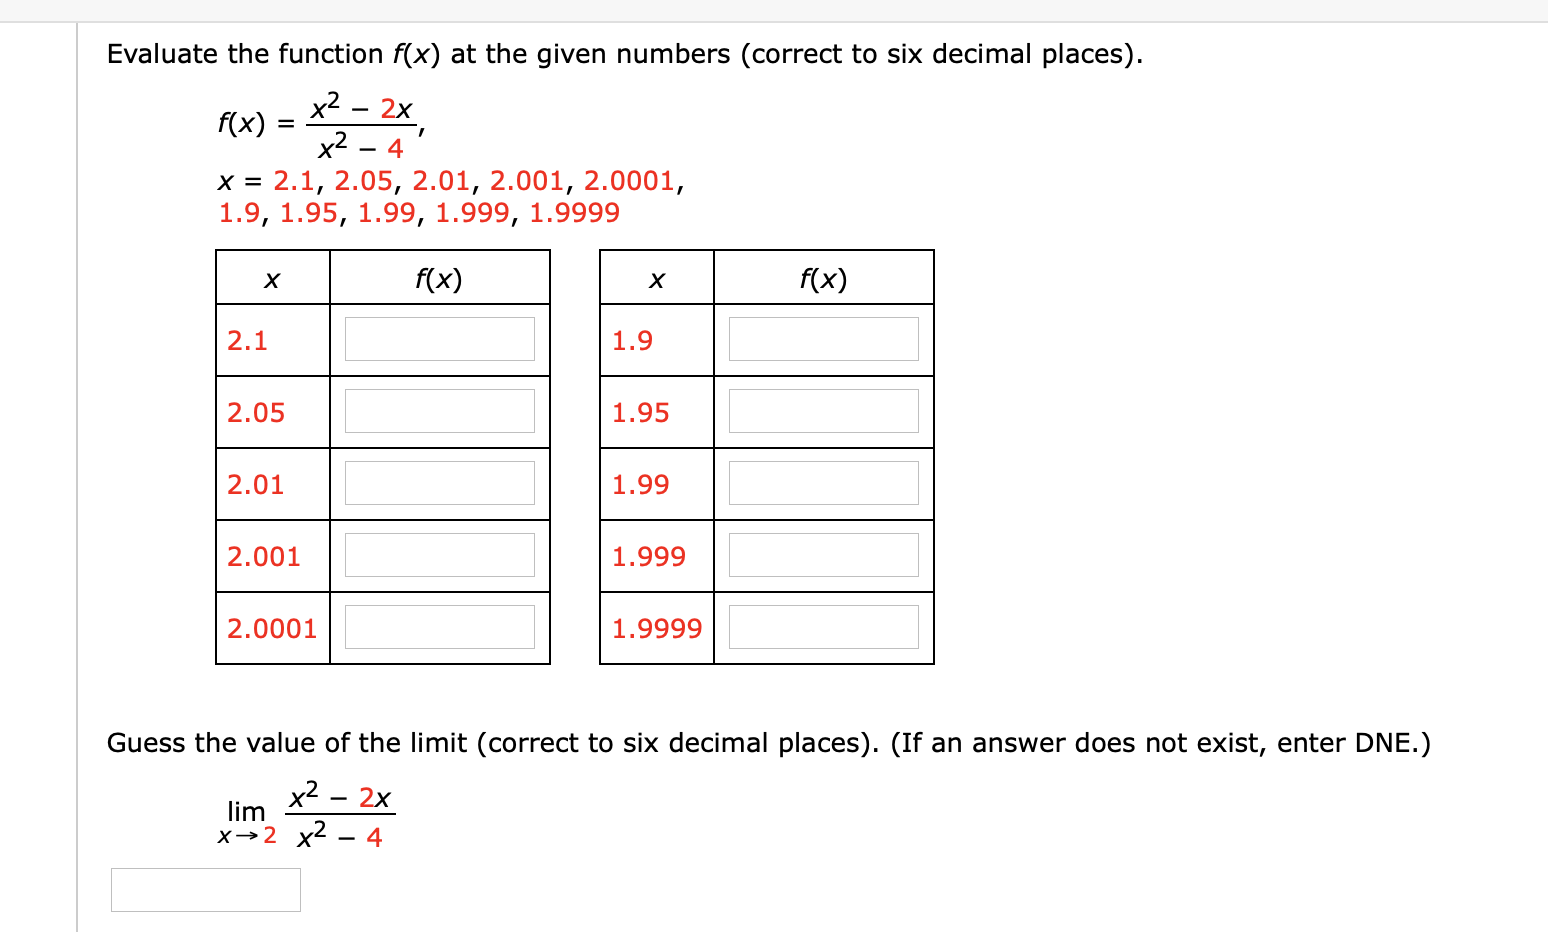 Evaluate the function f(x) at the given numbers (correct to six decimal places) x2 x2 - 4 x 2.1, 2.05, 2.01, 2.001, 2.0001, 1.9, 1.95, 1.99, 1.999, 1.9999 2x f(x) = f(x) f(x) X X 2.1 1.9 2.05 1.95 2.01 1.99 2.001 1.999 2.0001 1.9999 Guess the value of the limit (correct to six decimal places). (If an answer does not exist, enter DNE.) x2 lim 2x x2 x2 - 4